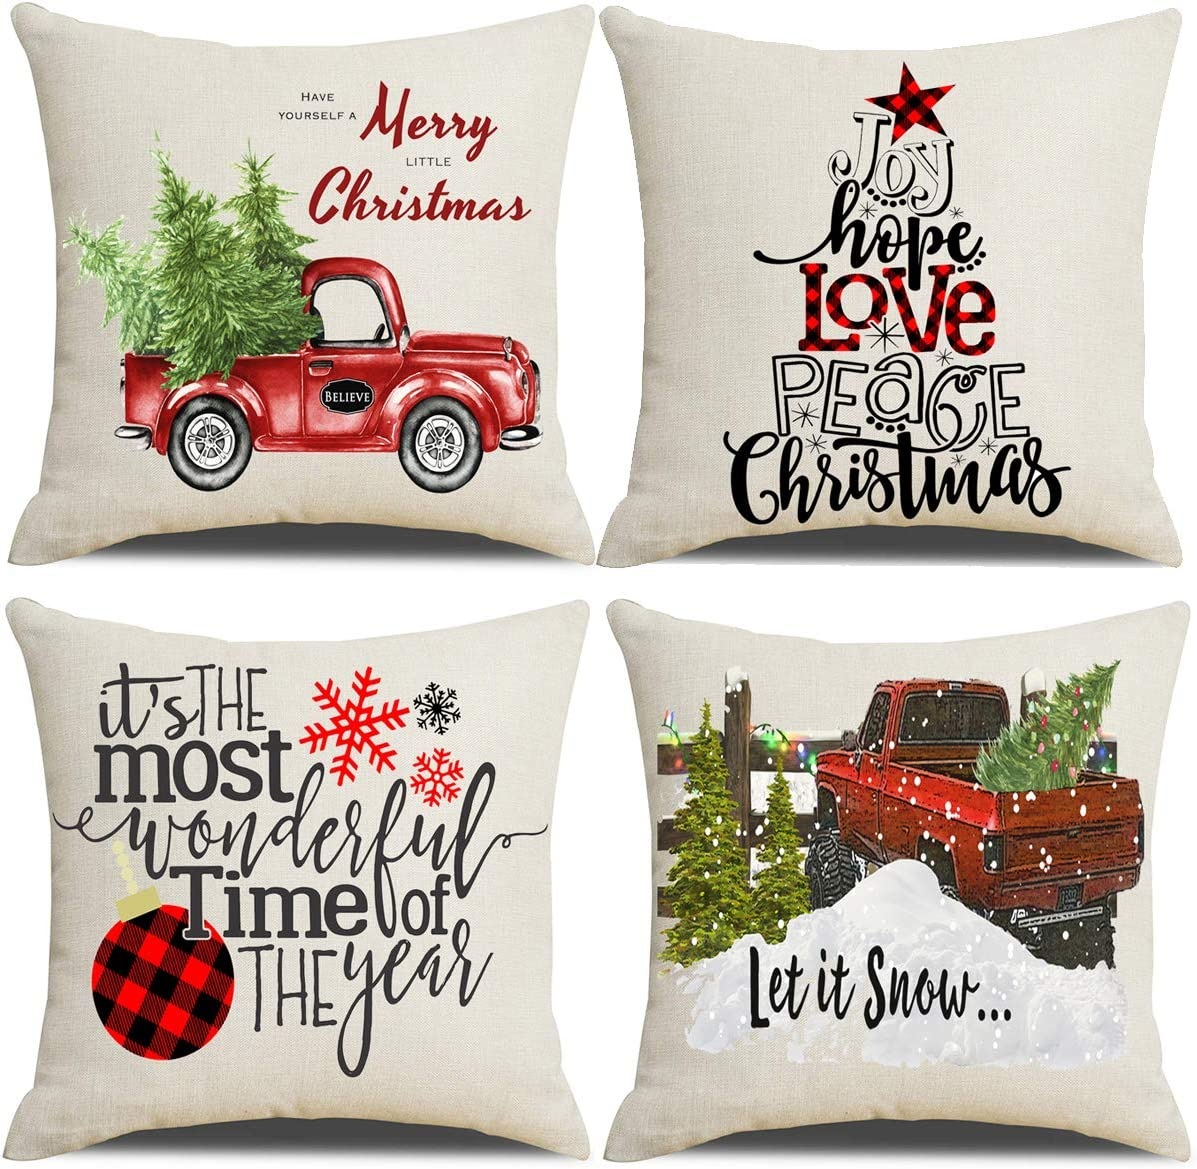 Amazon Com Lanpn Christmas 16x16 Throw Pillow Covers Decorative Outdoor Farmhouse Merry Christmas Xmas Pillow Shams Cases Slipcovers Cover Set Of 4 Couch Sofa Home Kitchen